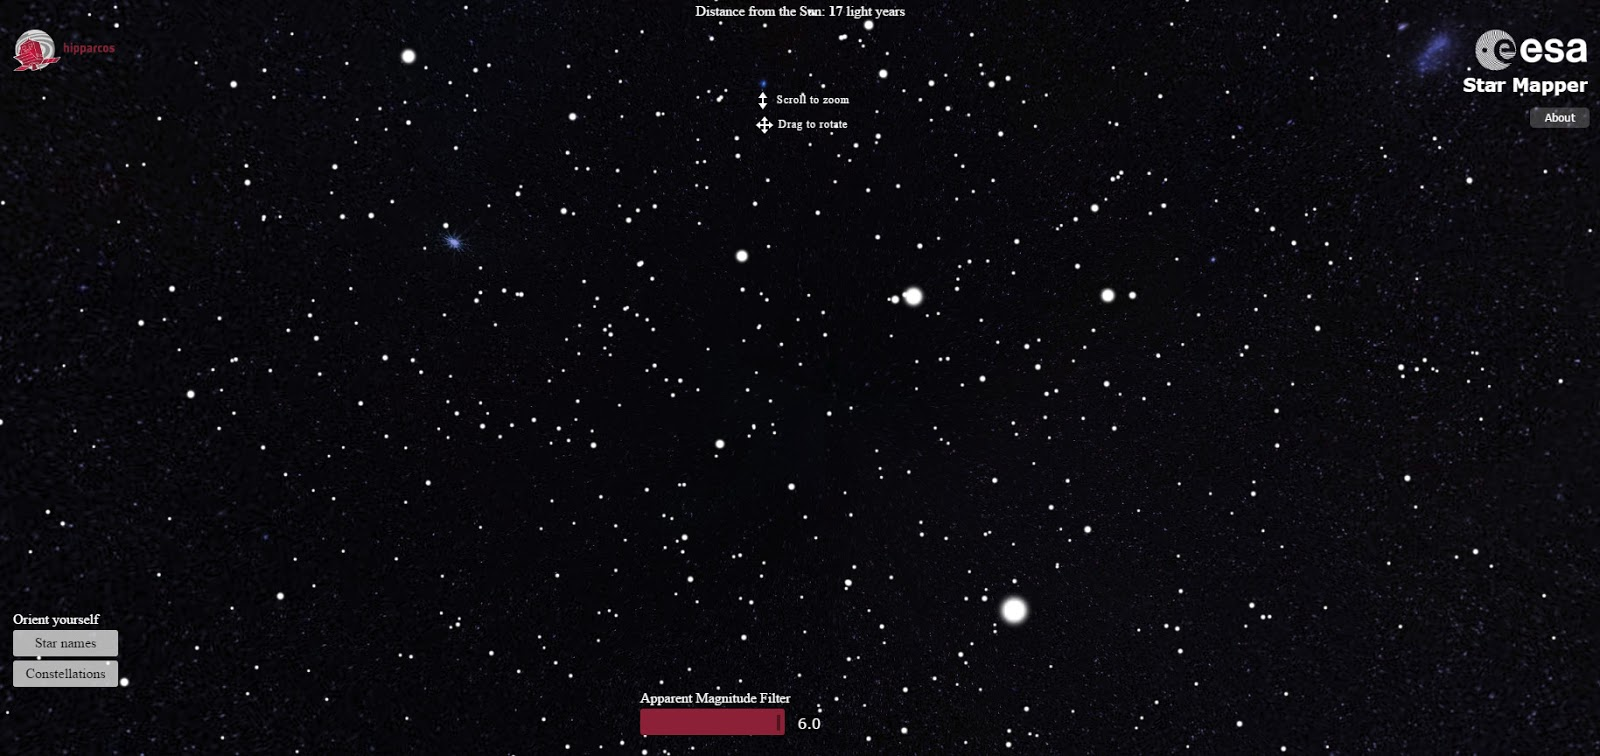 Star Mapper:  A visualisation based on data from the European Space Agency's Hipparcos star mapper